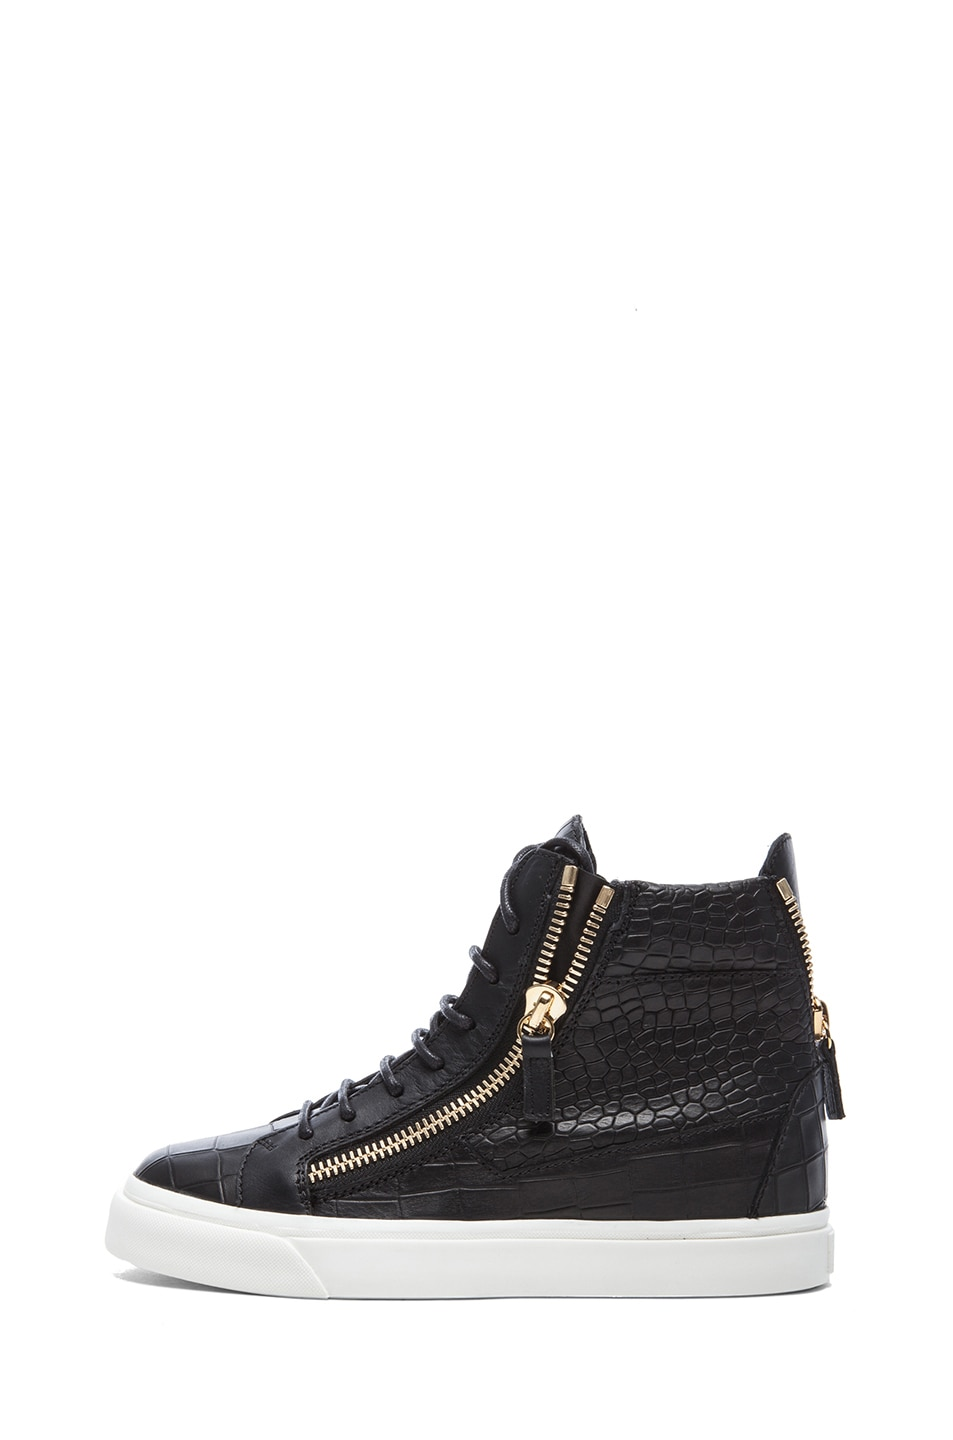 Image 1 of Giuseppe Zanotti London Croc Embossed Leather Sneakers in Black